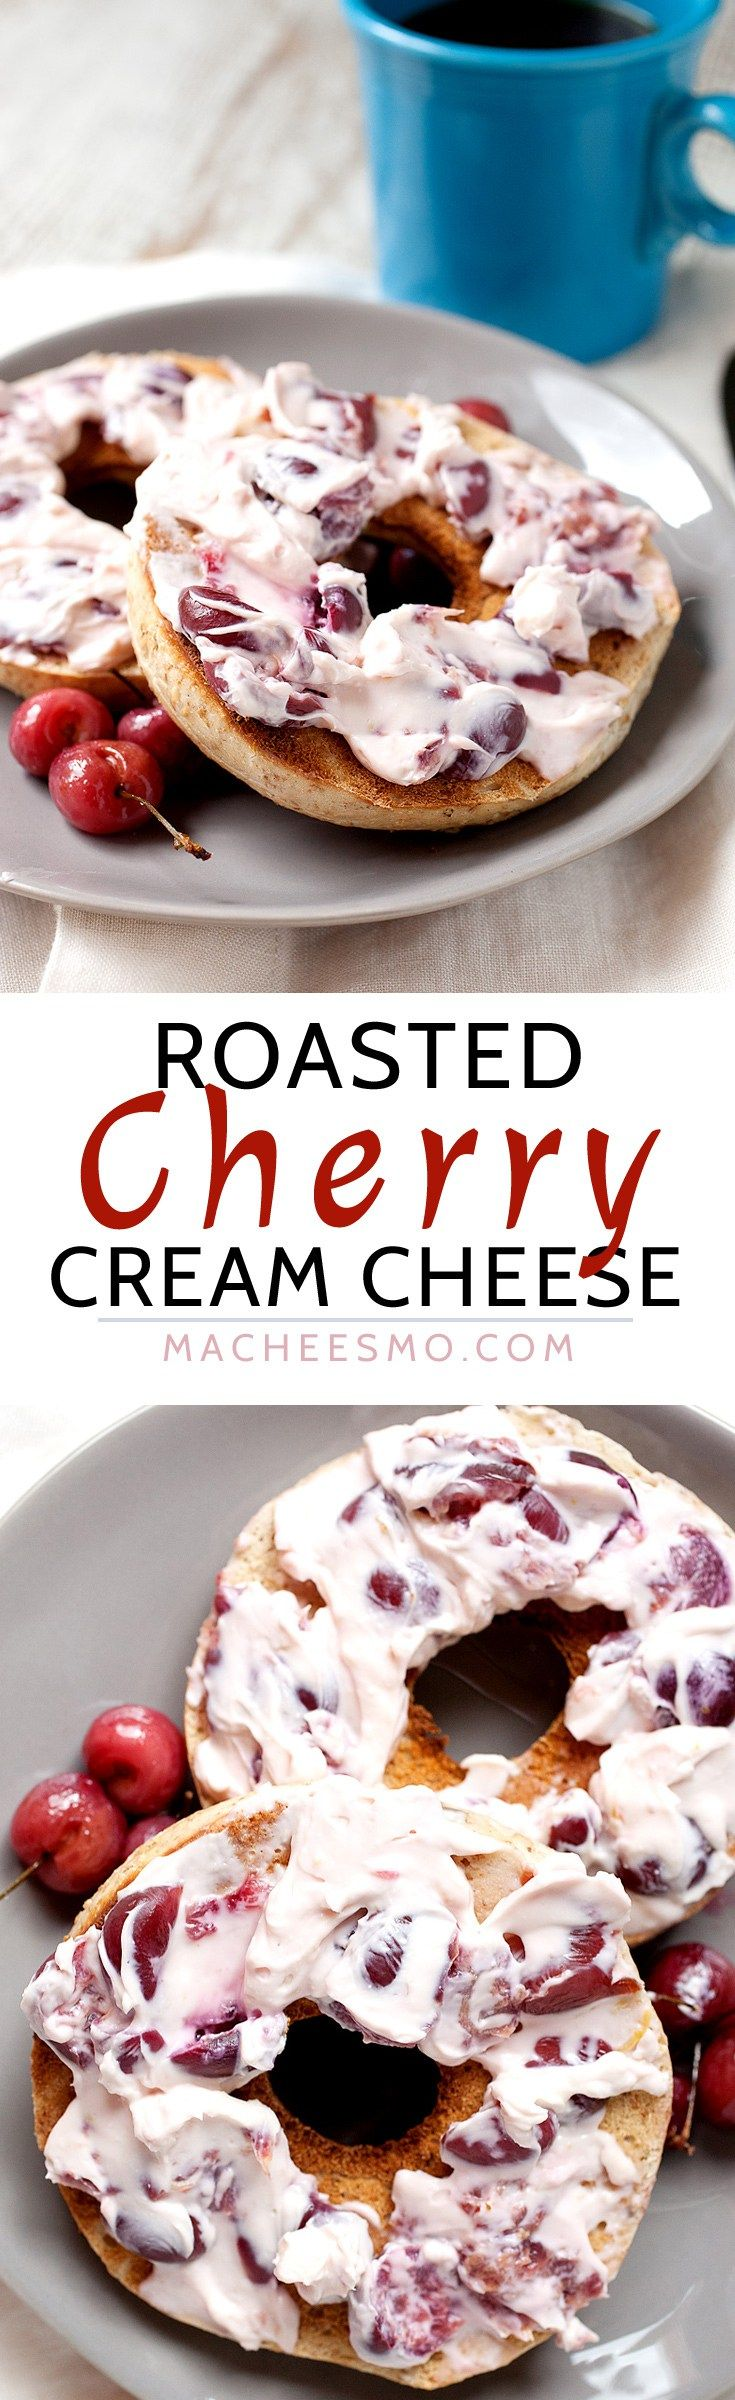 Roasted Cherry Cream Cheese: Not a bagel topper you can buy in the store, but a perfect one to make at home when delicious ripe cherries are in season. Lemon, honey, and packed full of roasted sweet cherries.   macheesmo.com